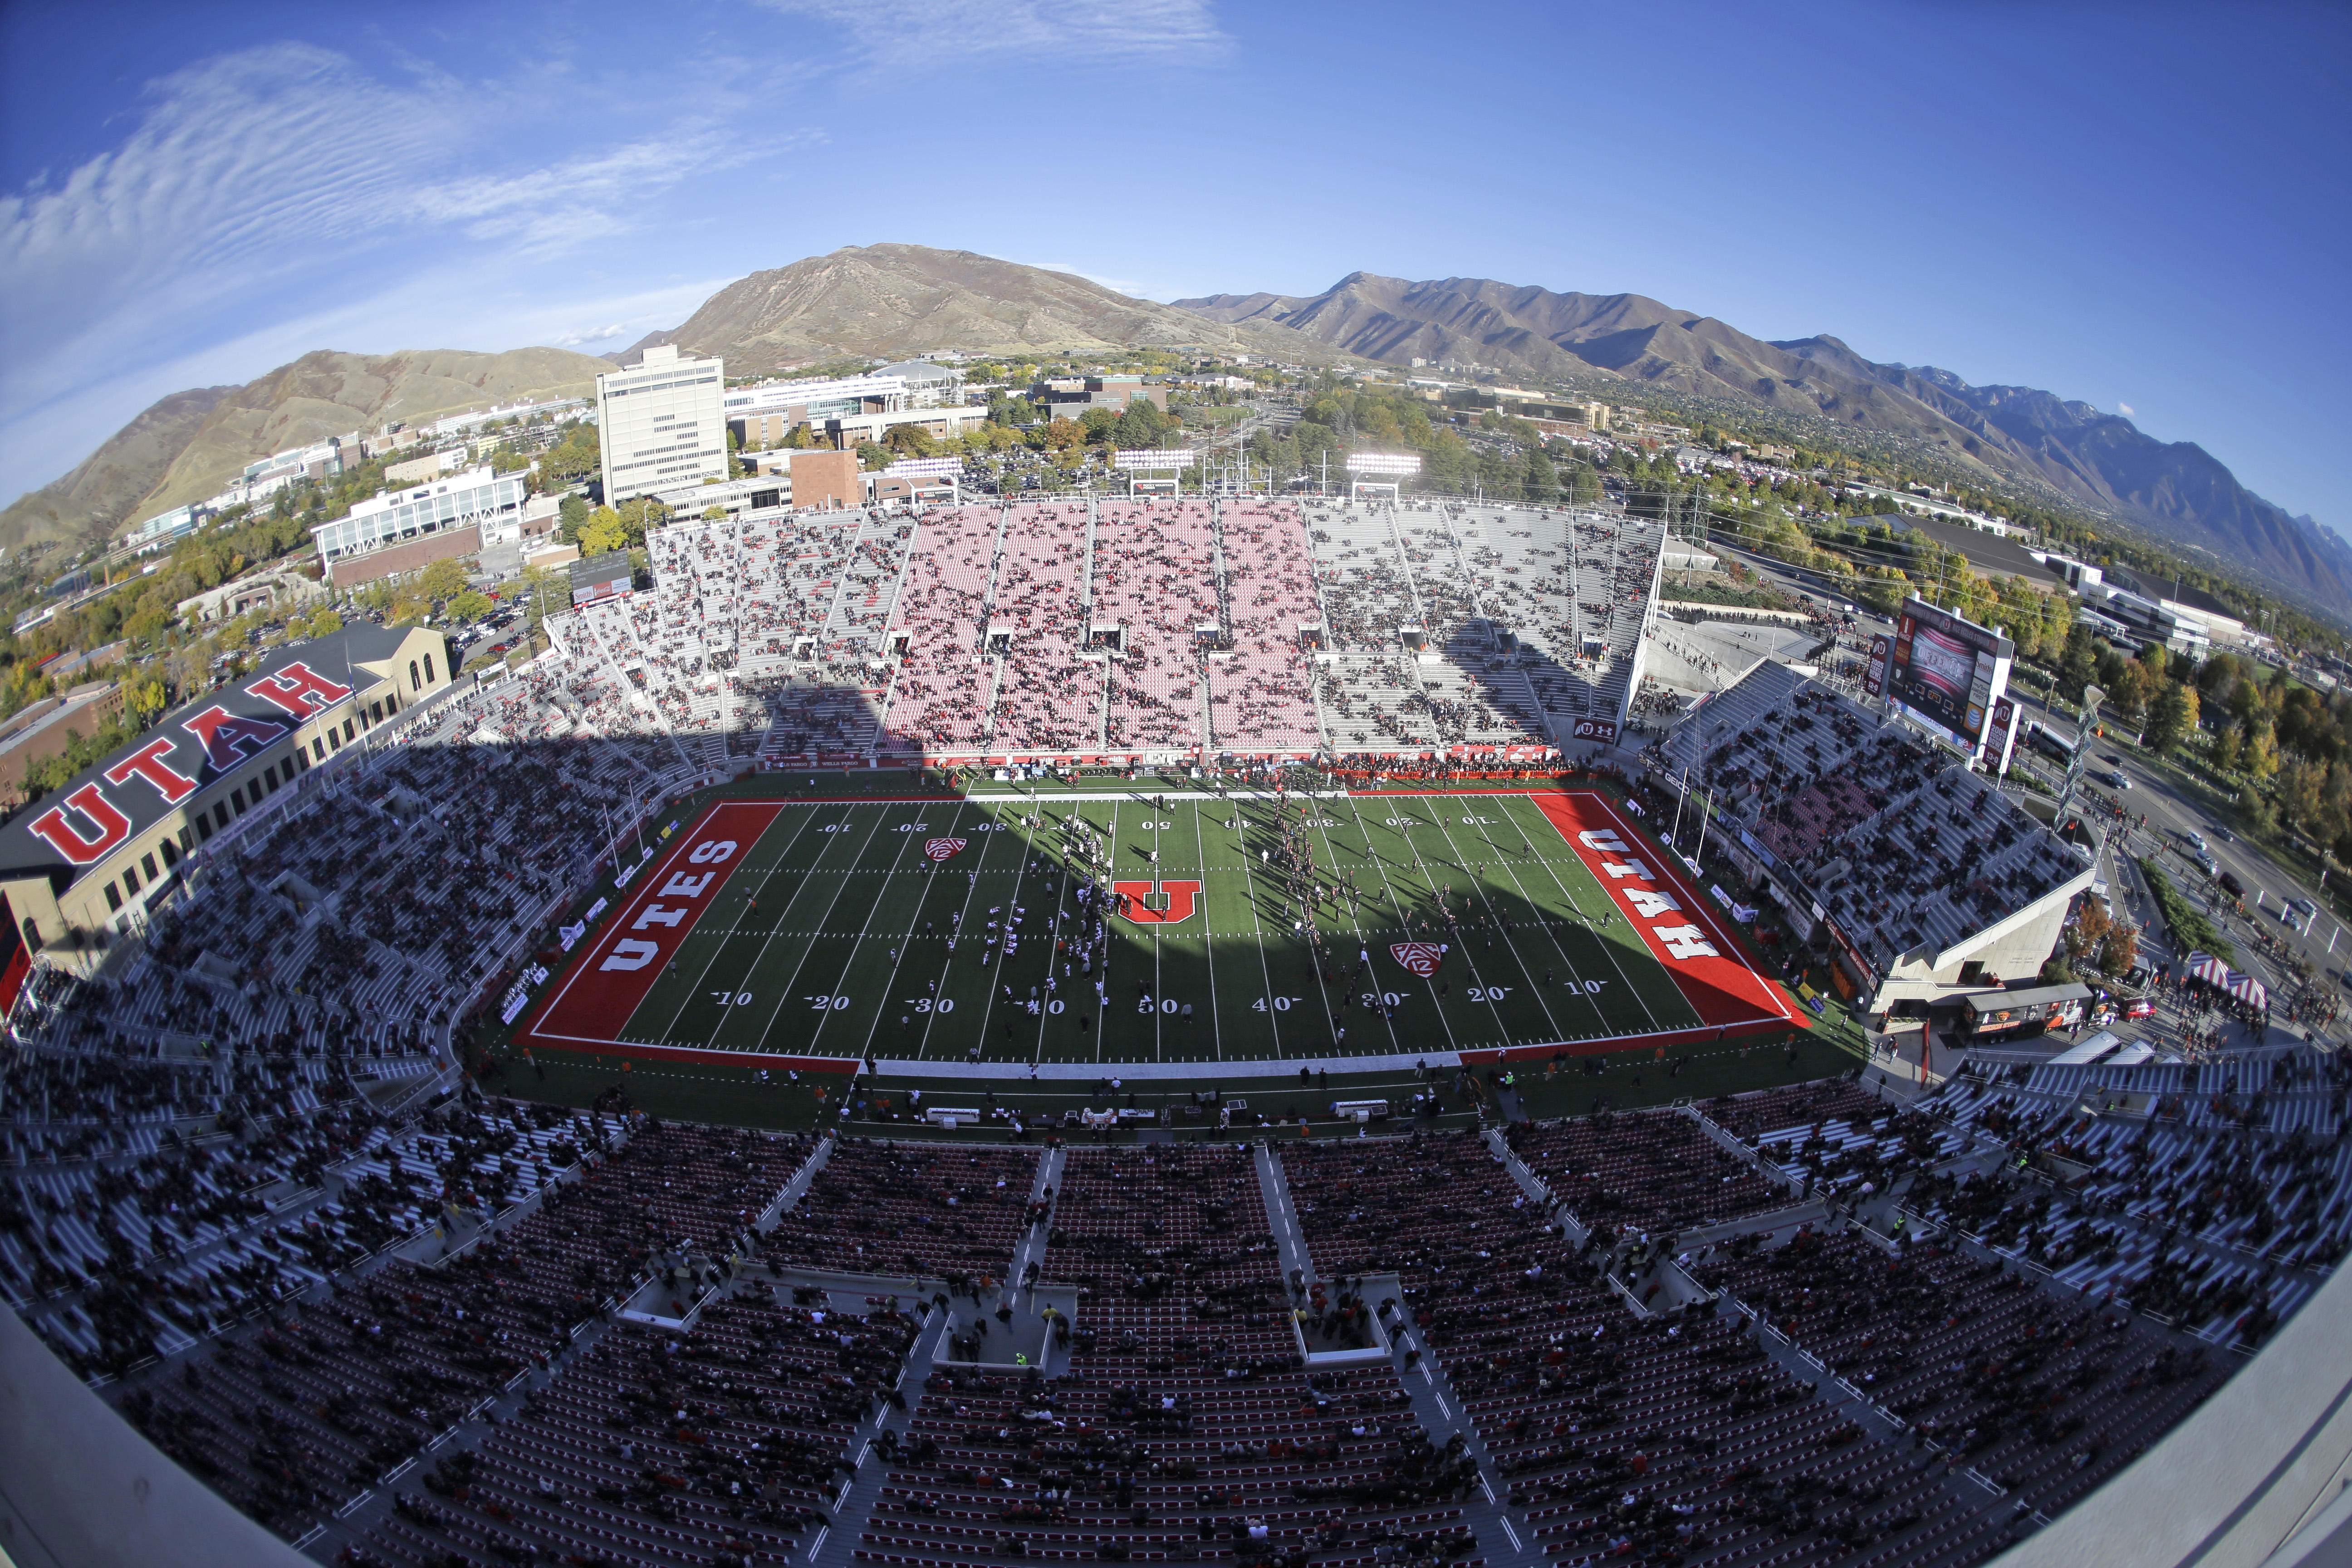 Utah's Rice-Eccles Stadium is viewed before an NCAA college football game between Oregon State and Utah, Saturday, Oct. 31, 2015, in Salt Lake City. (AP Photo/Rick Bowmer)